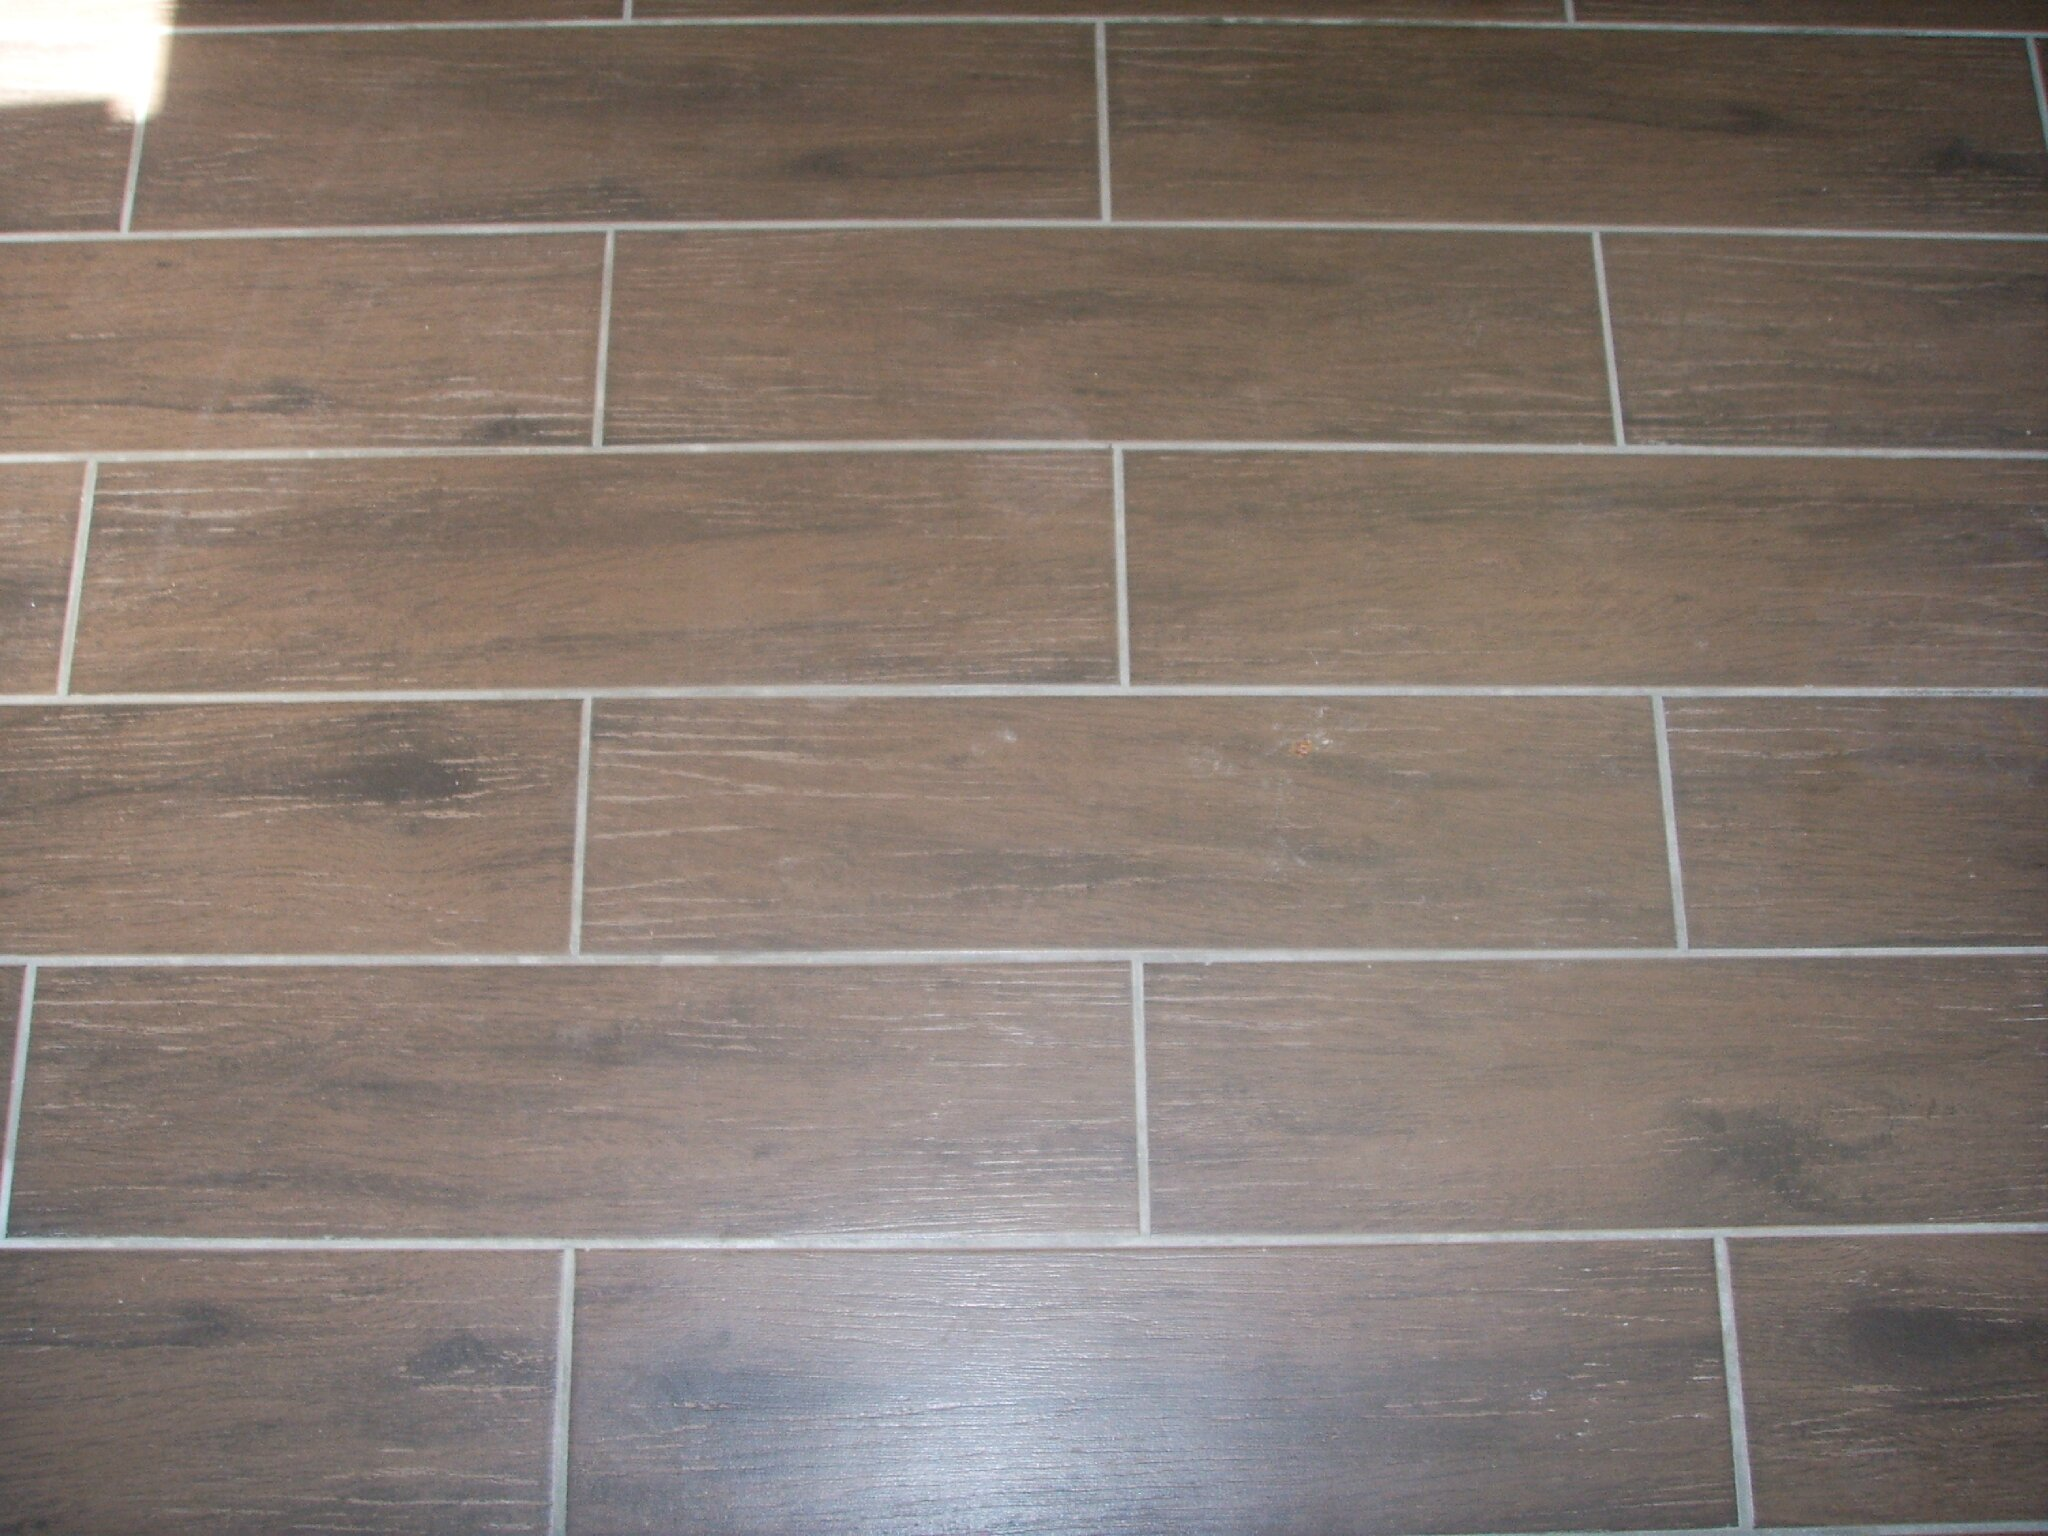 Parquet ou carrelage appartement devis pour travaux maison for Devis carrelage pose